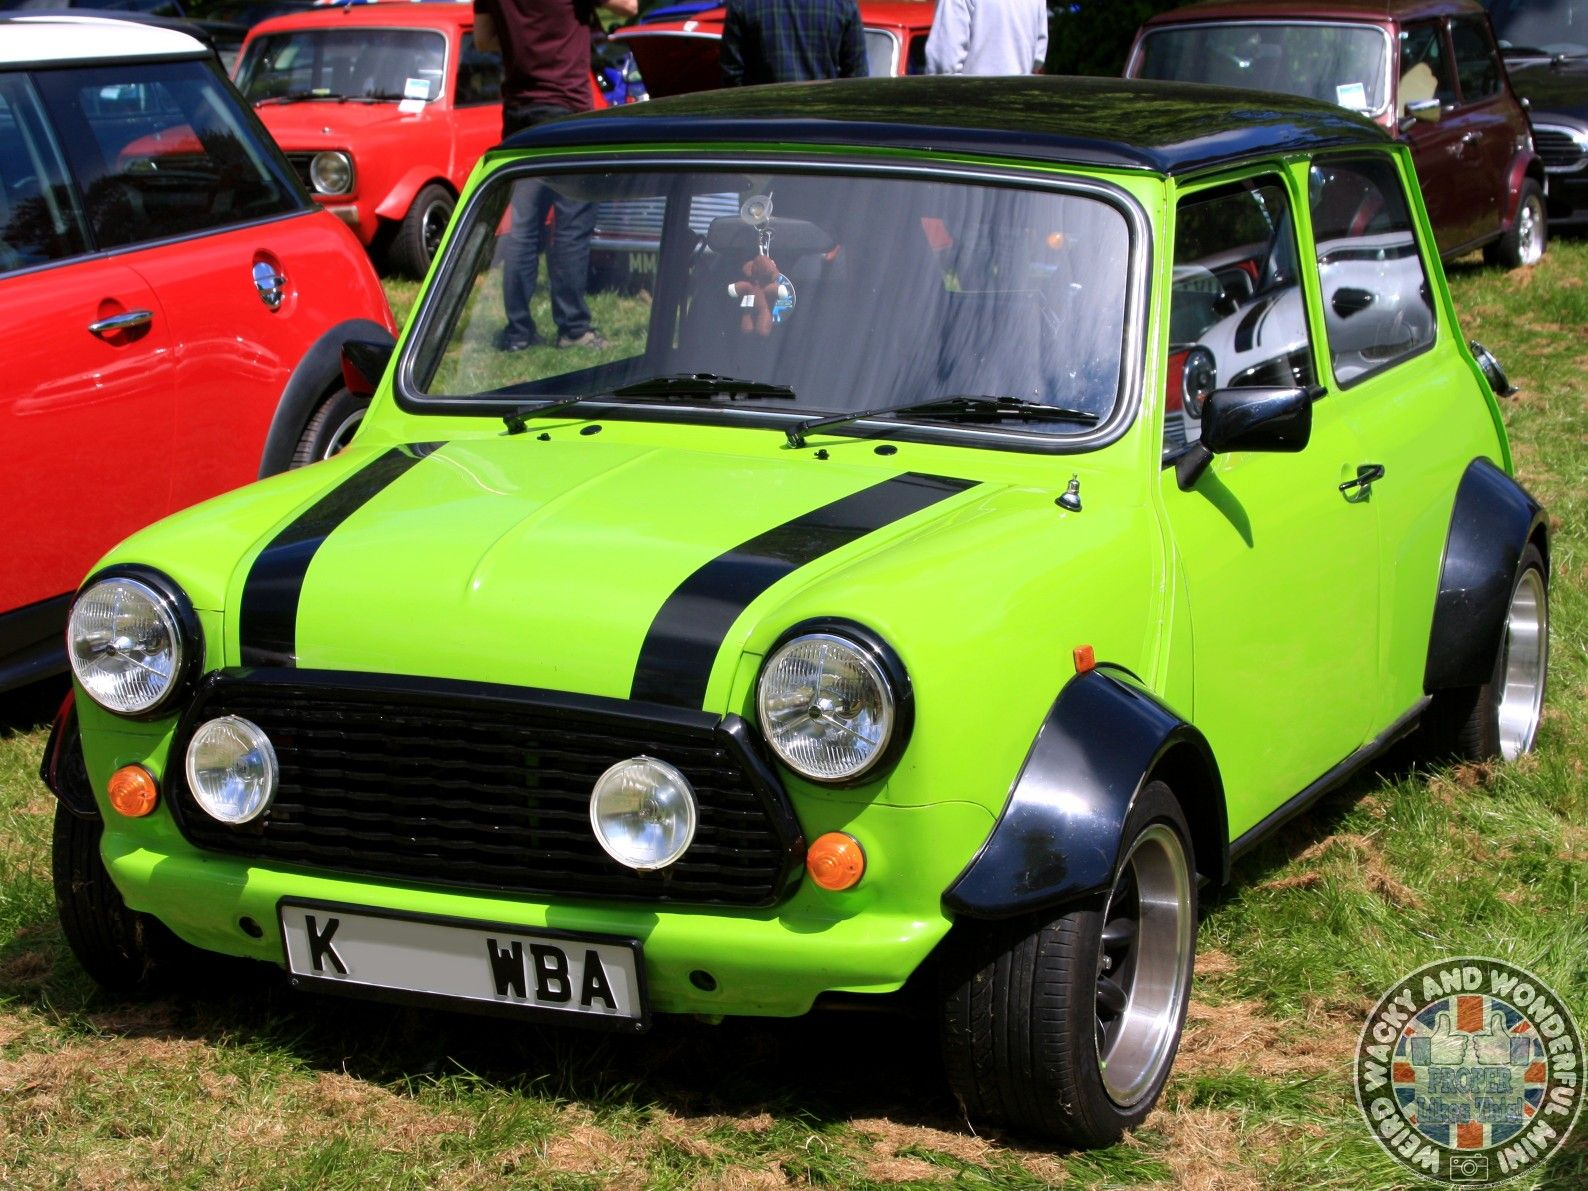 Up next is a W.A.W stunner that really stood out in the ranks a #britishminiday. Awesome colour n stance & my mate Adam really loved the number plate too!